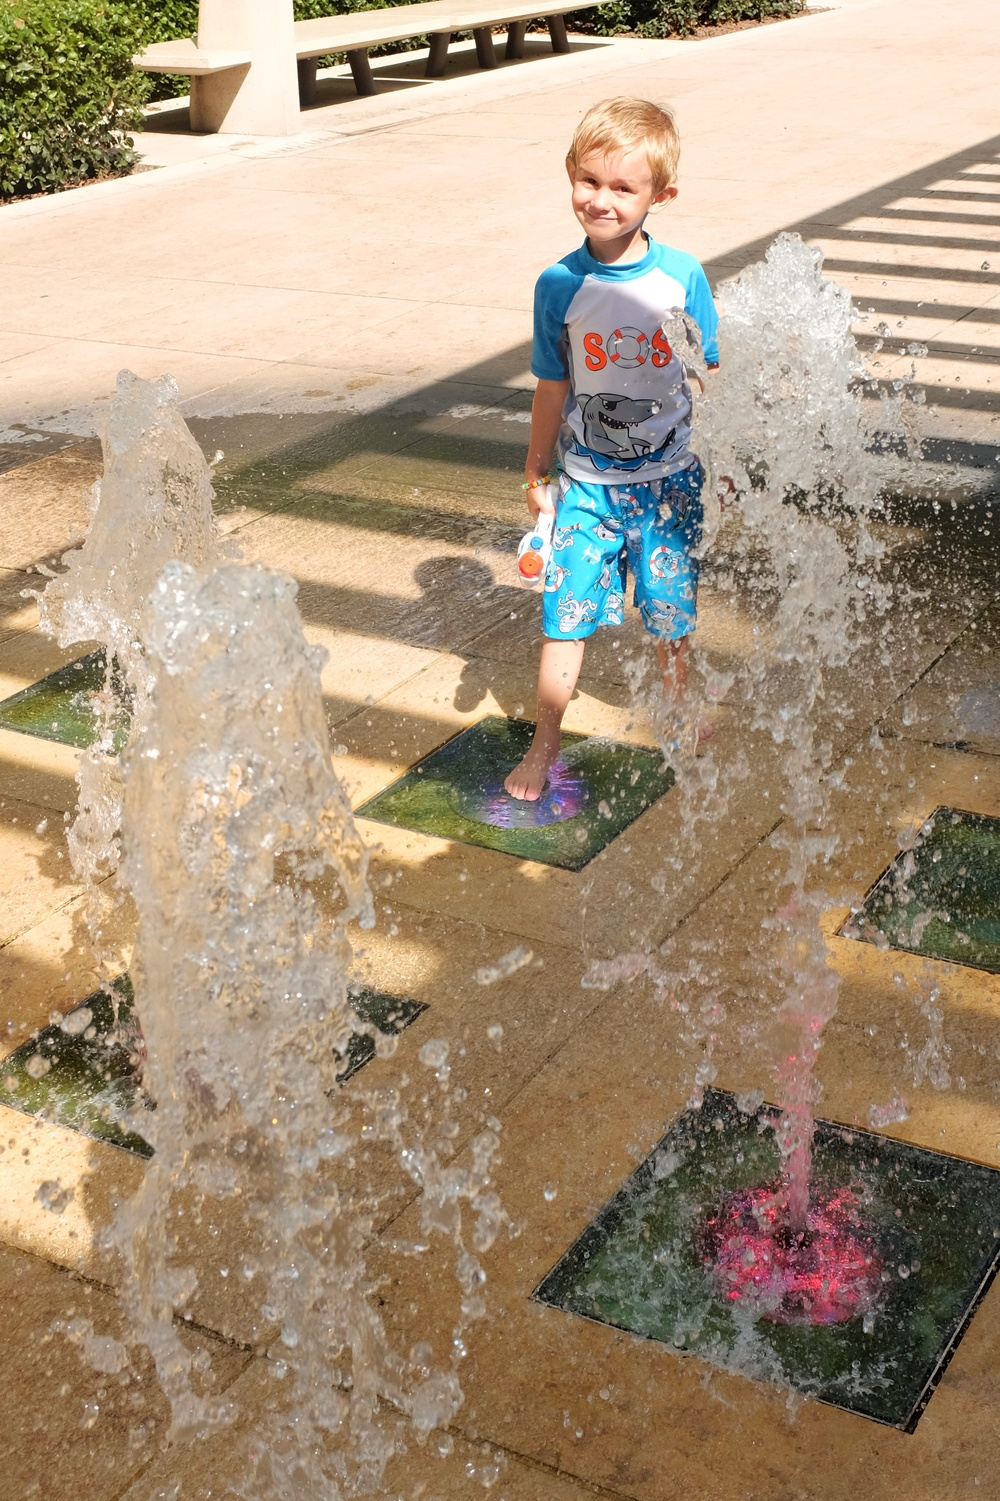 Kian enjoying the cool splash on the hot sunny day